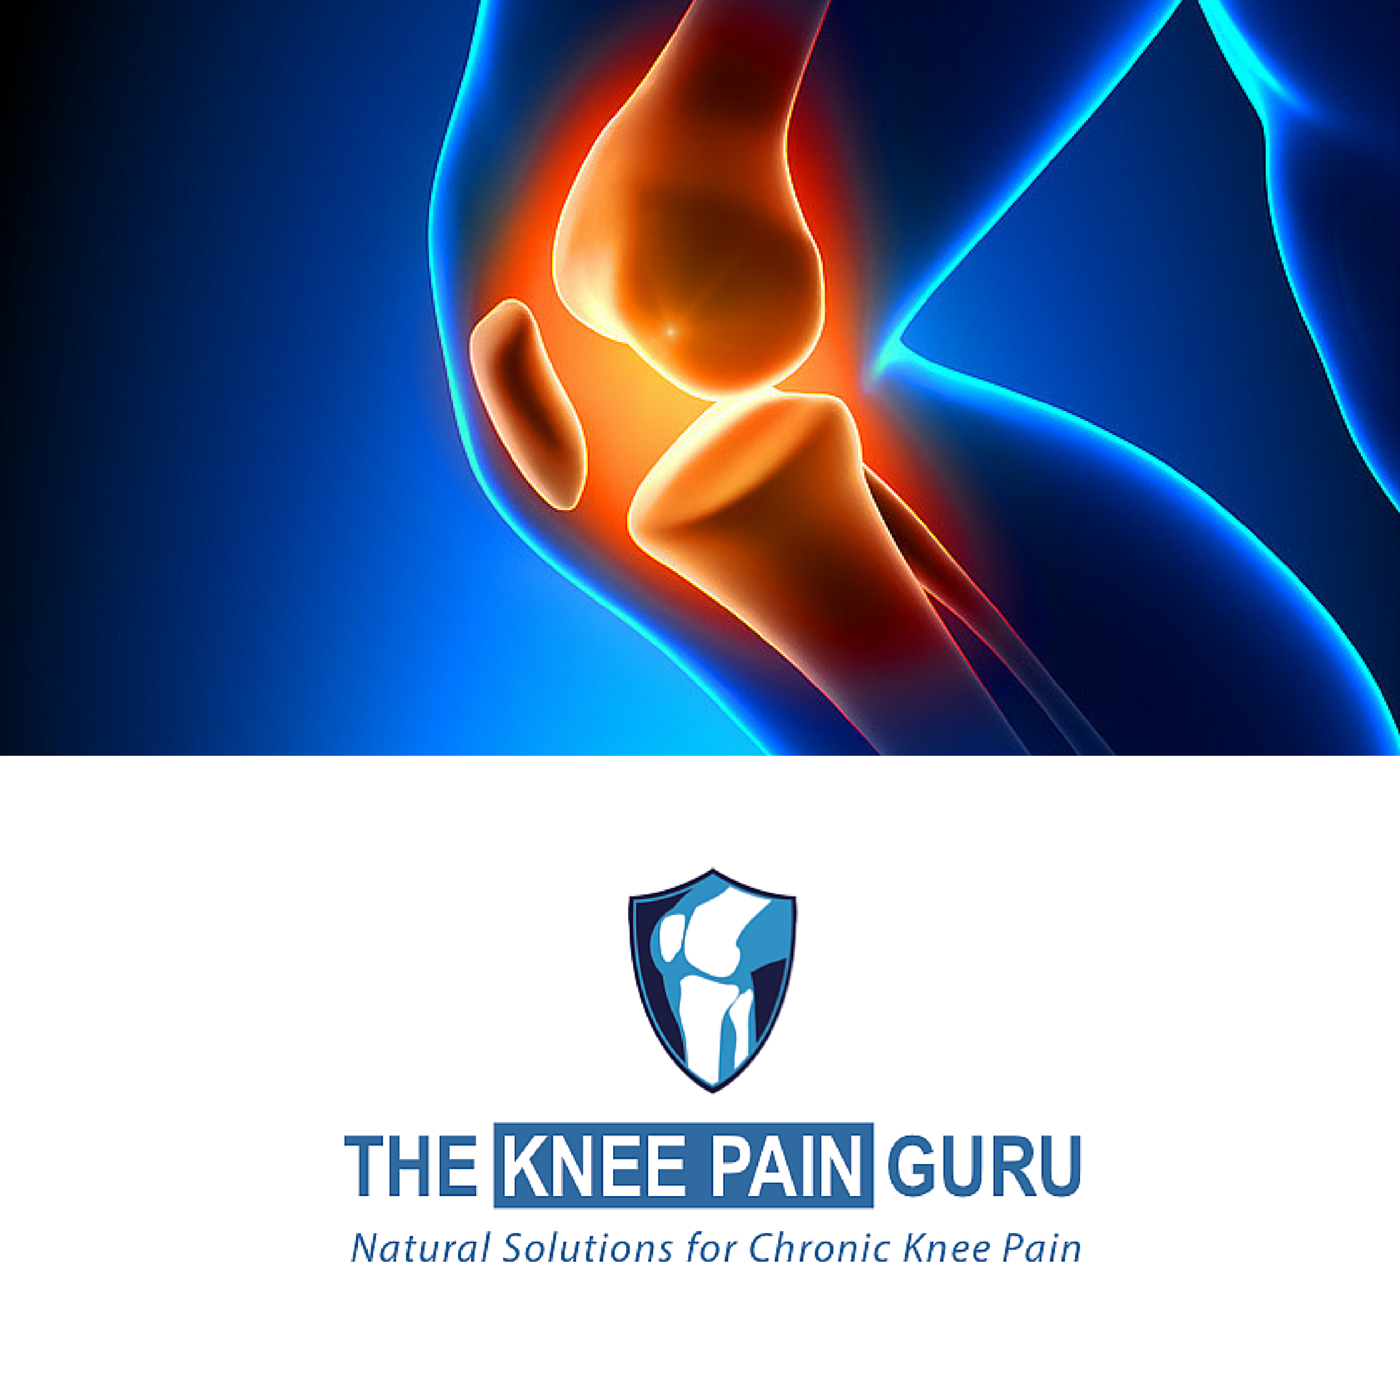 The Knee Pain Guru